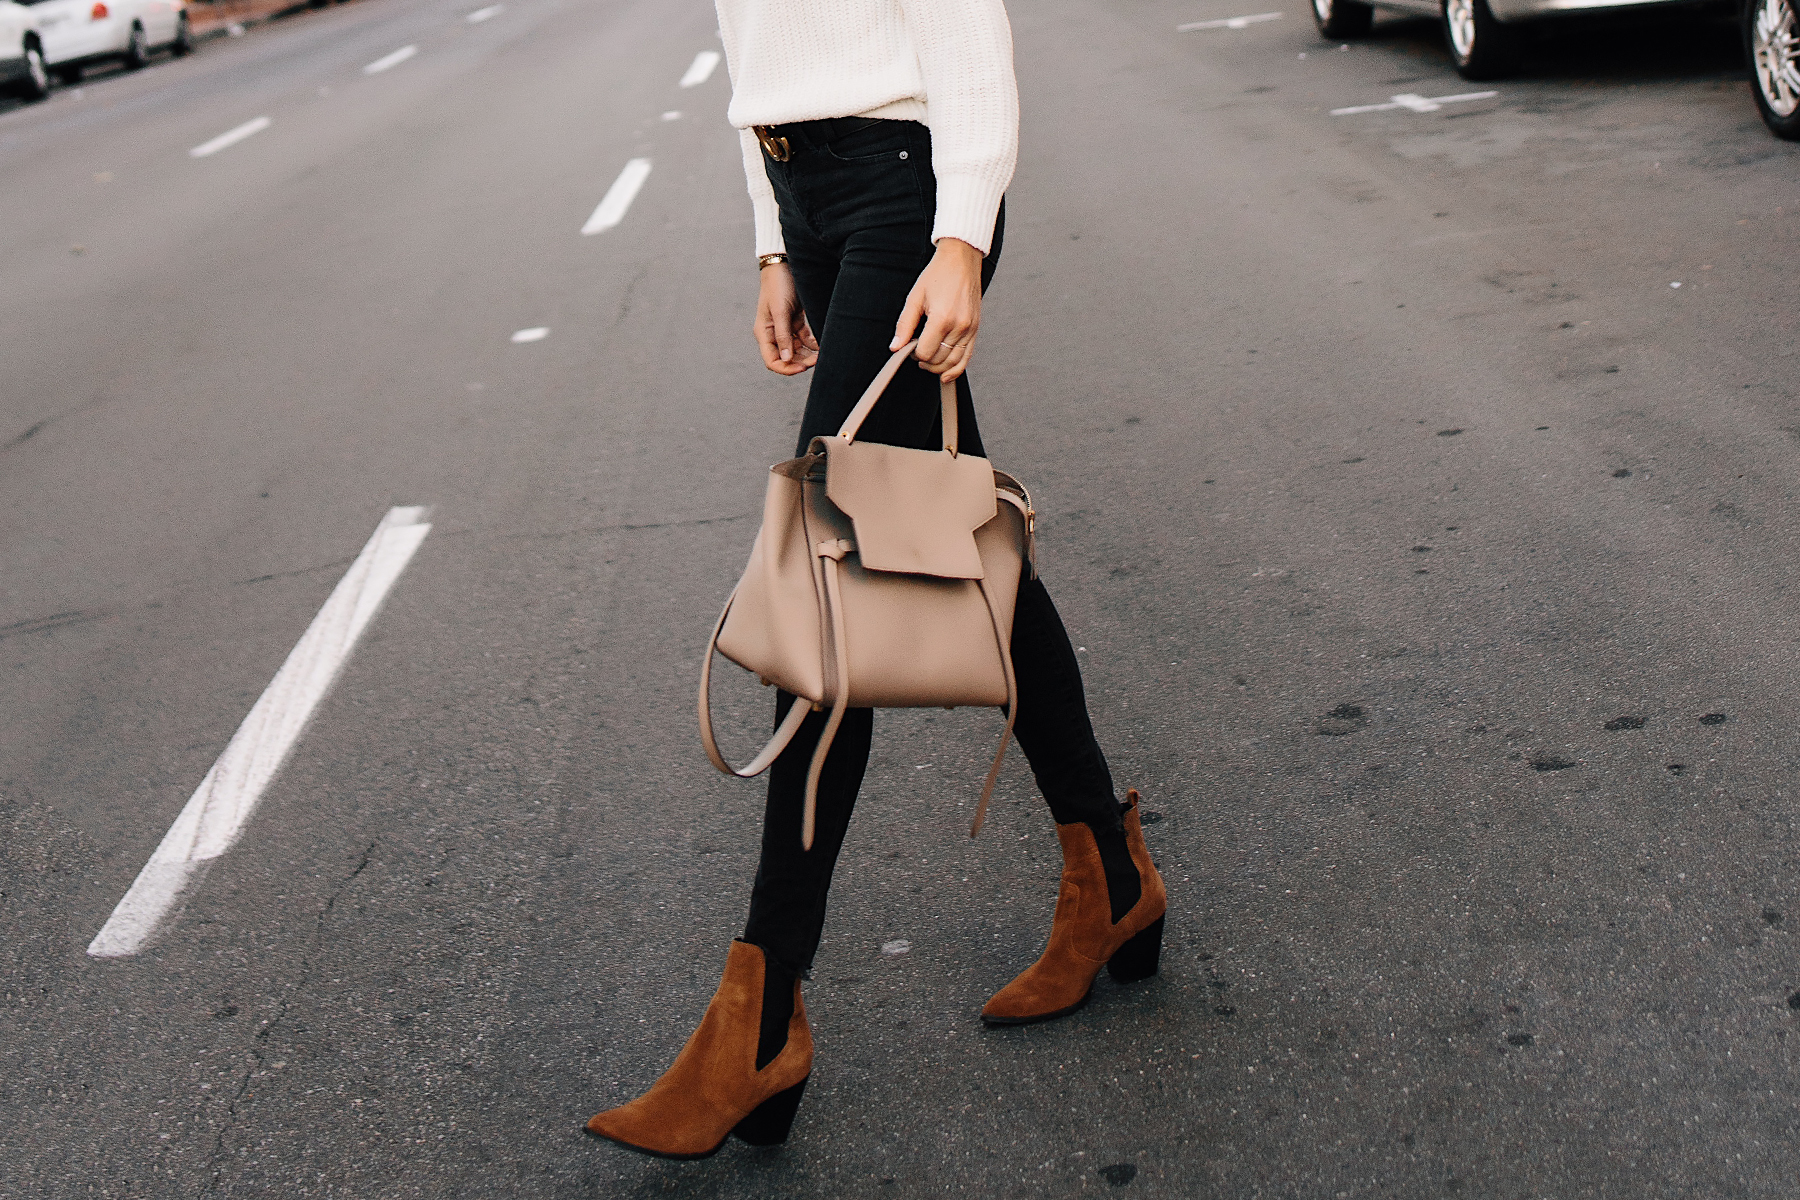 Woman Wearing Steve Madden Brown Chelsea Booties Celine Mini Belt Bag Black Skinny Jeans Outfit Fashion Jackson San Diego Fashion Blogger Street Style